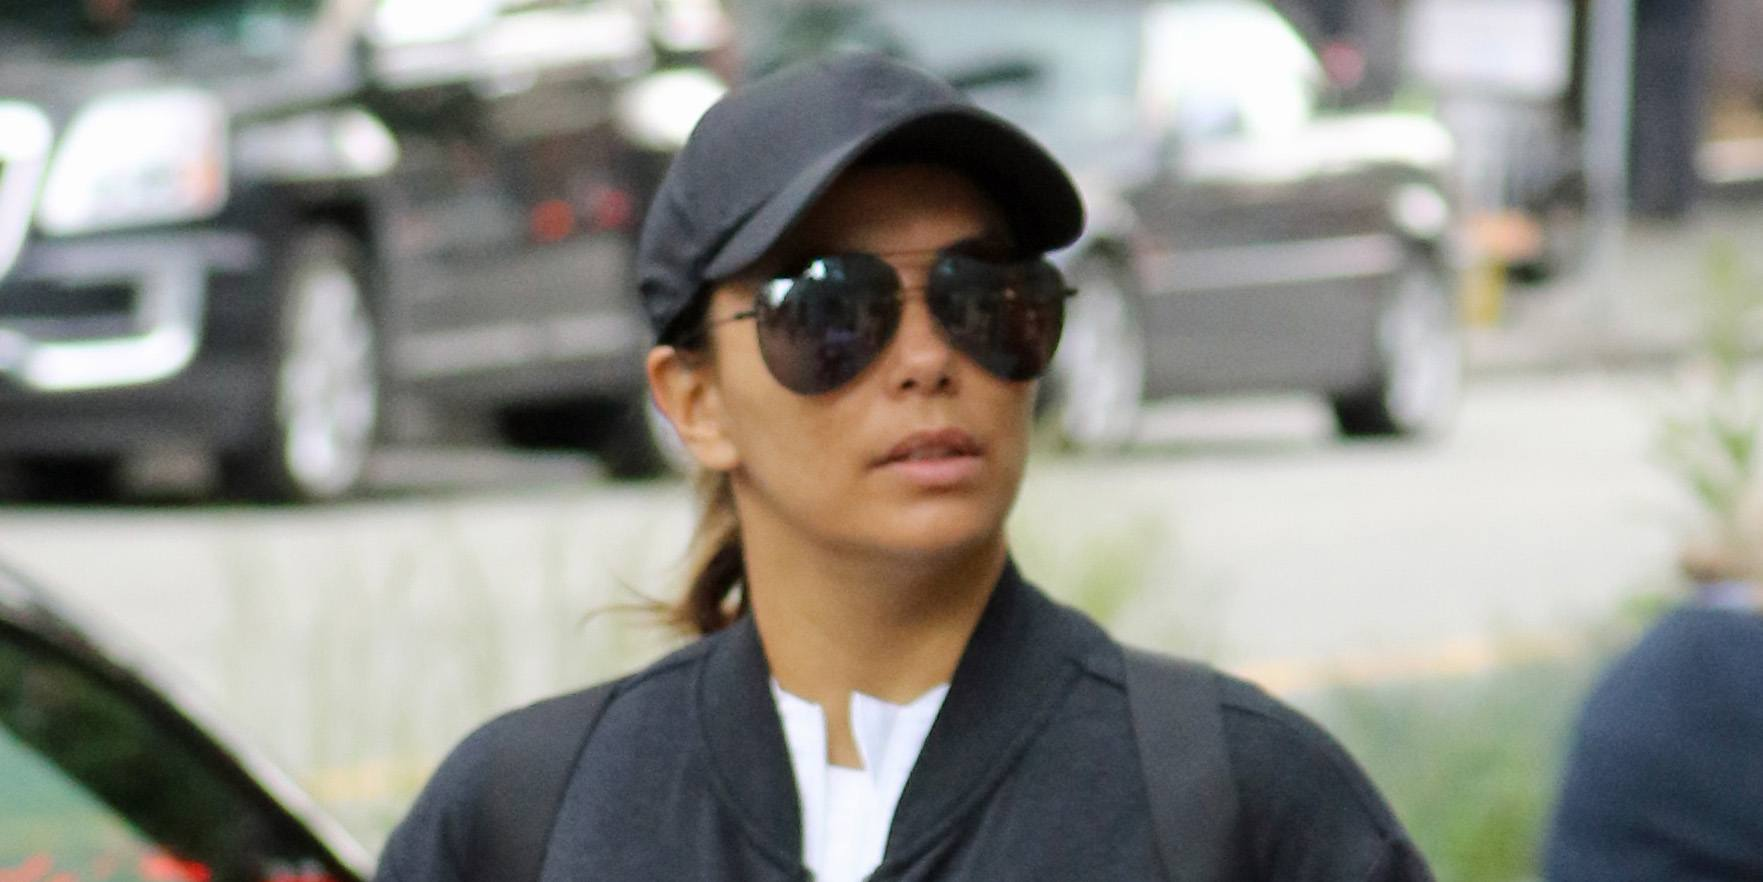 Eva Longoria spotted shopping in Vancouver